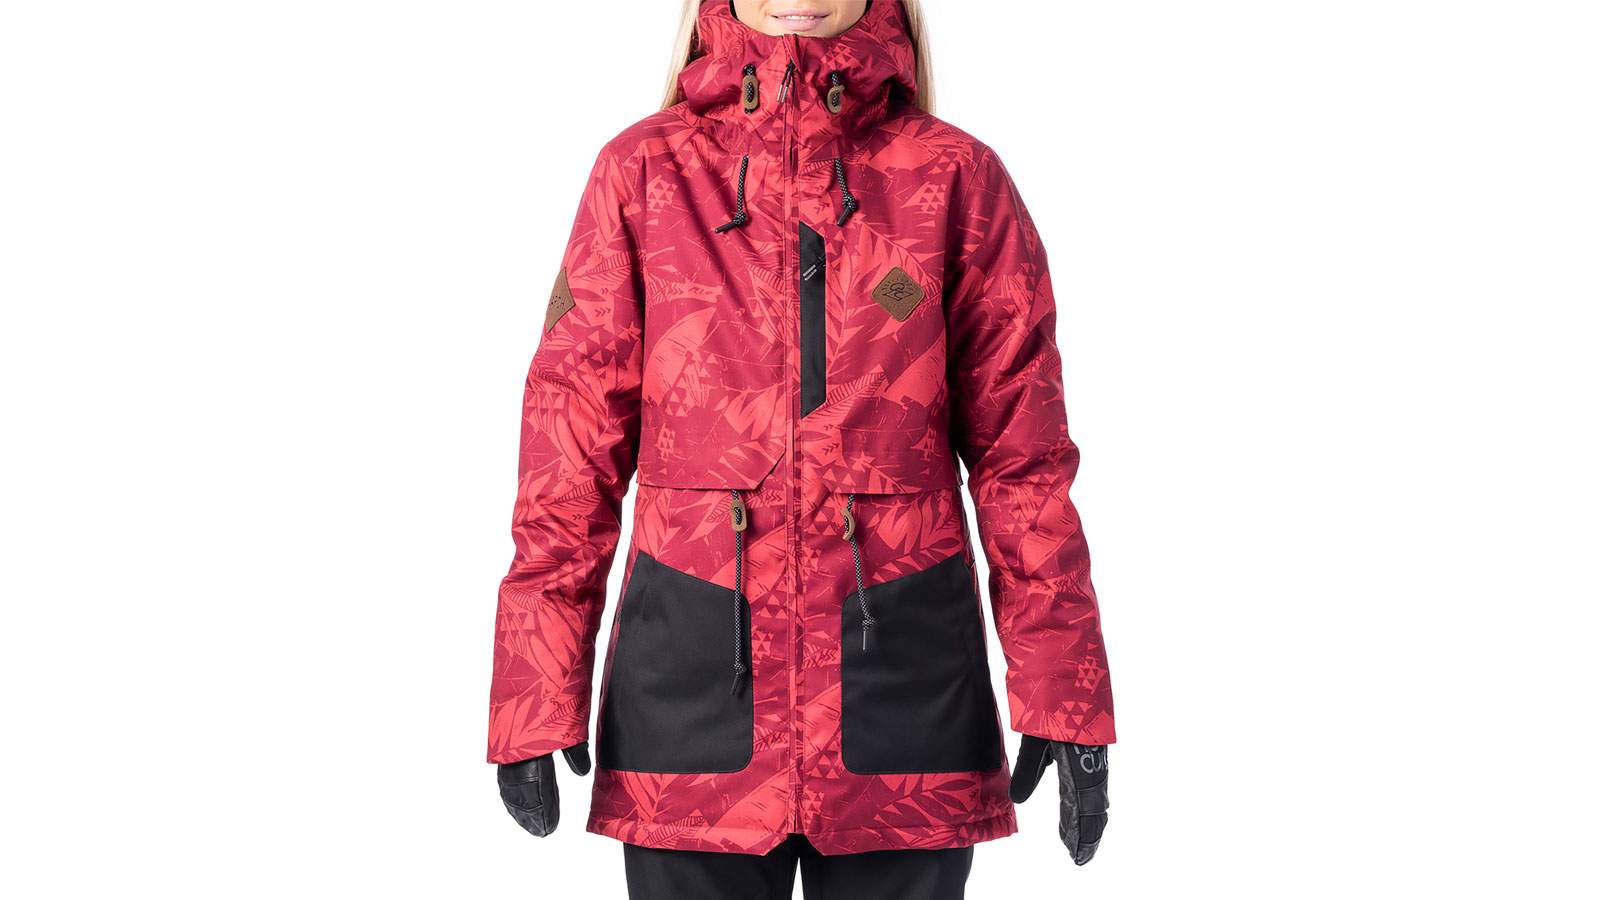 RIPCURL-SNOW-OUTERWEAR-JACKET-FW19-20